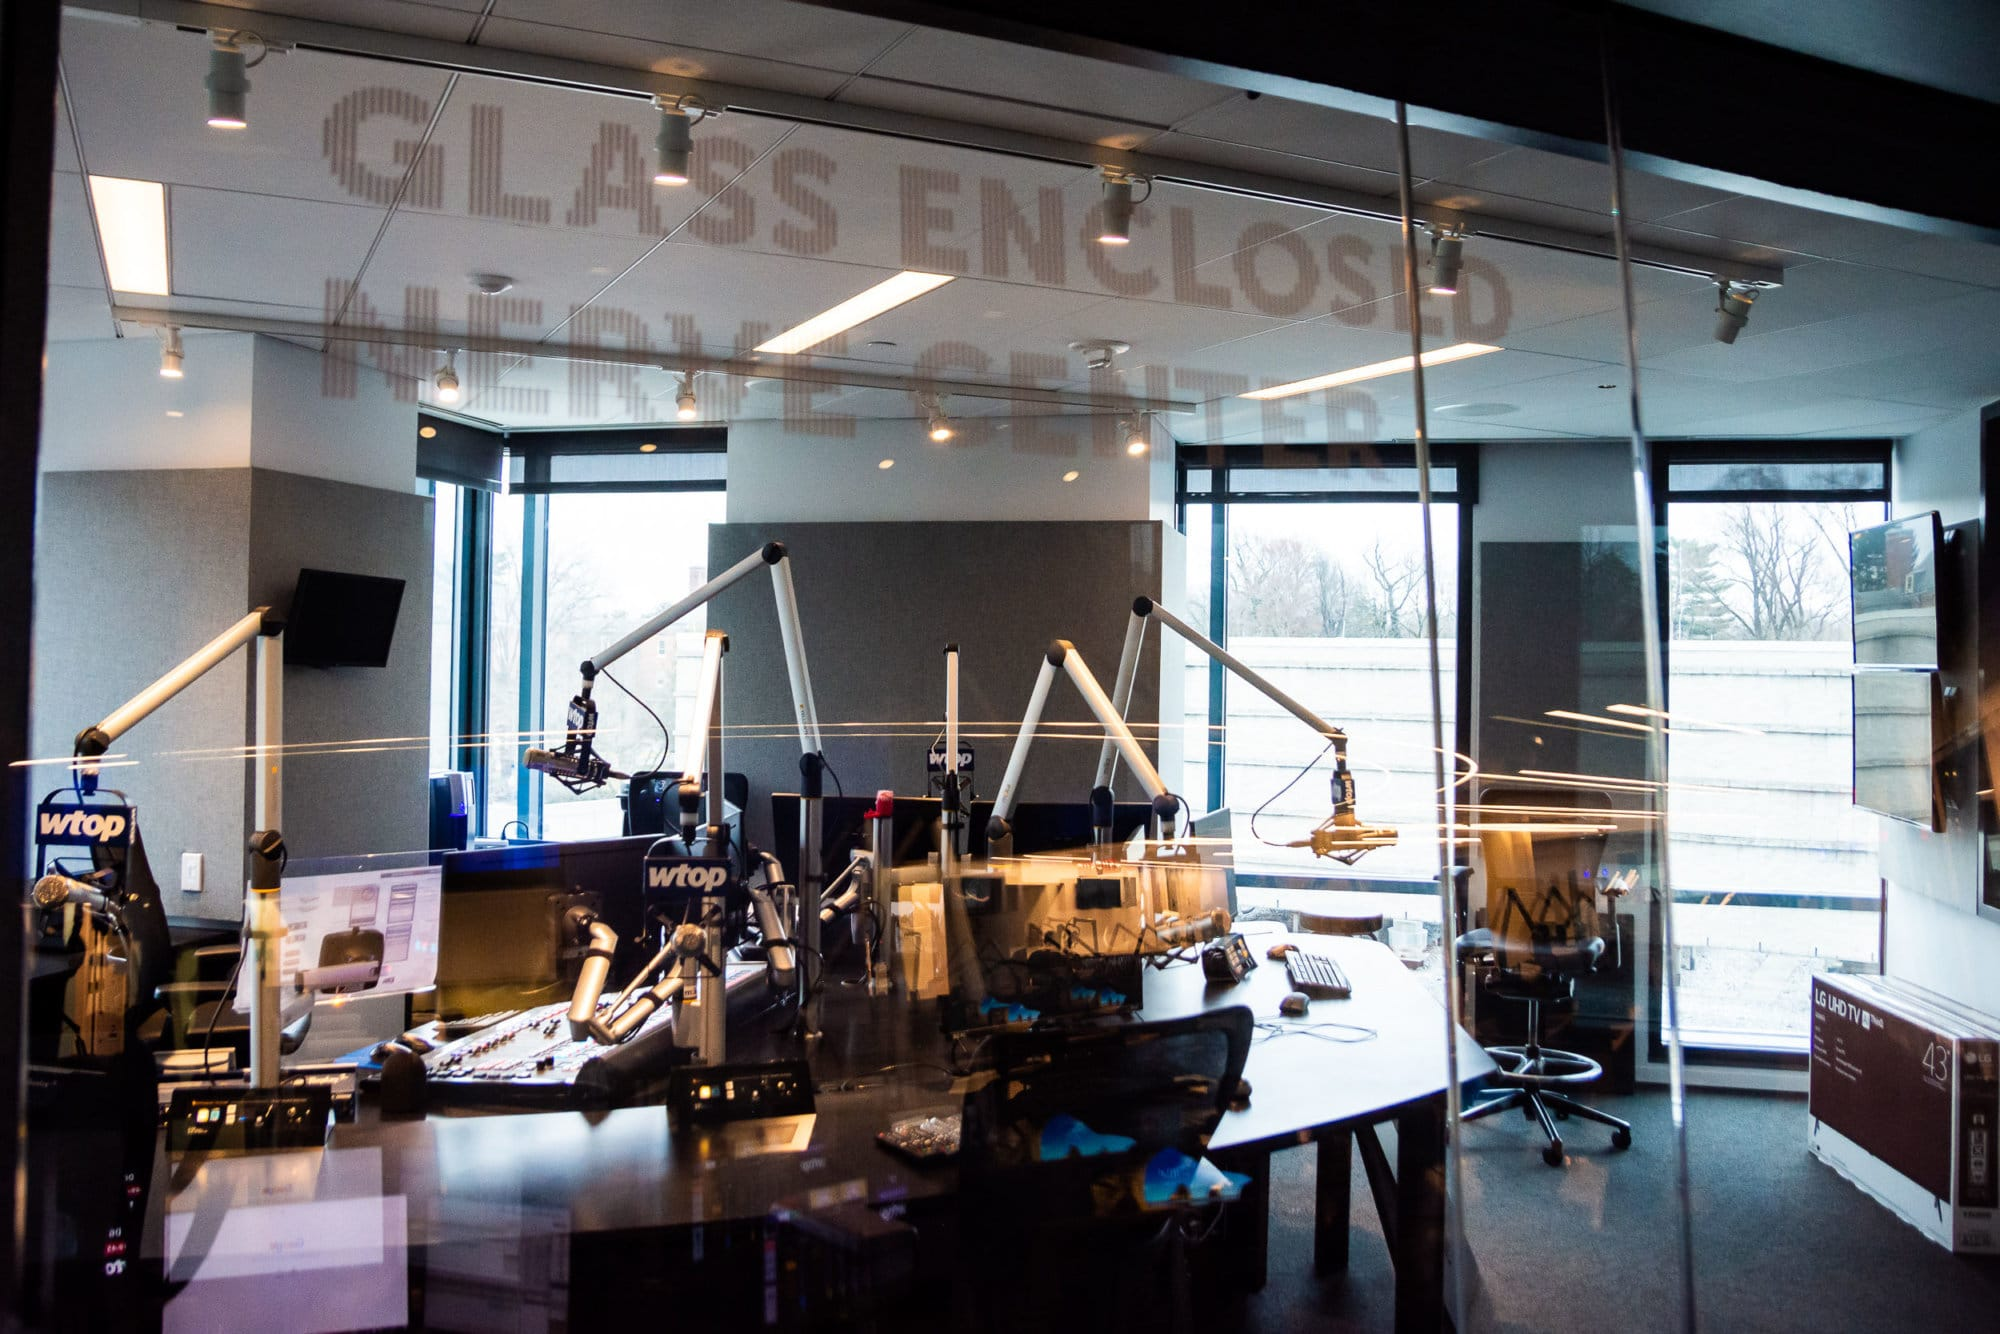 Dedicated WTOP listeners will likely be familiar with the fabled Glass-Enclosed Nerve Center (GENC), the translucent battleship bridge from which our anchors continously broadcast the news to millions in the D.C. area. The brand-new GENC at 5425 Wisconsin Ave. comes with more space, additional anchor positions, a private coffee machine, and, perhaps most fittingly: More glass. (WTOP/Alejandro Alvarez)